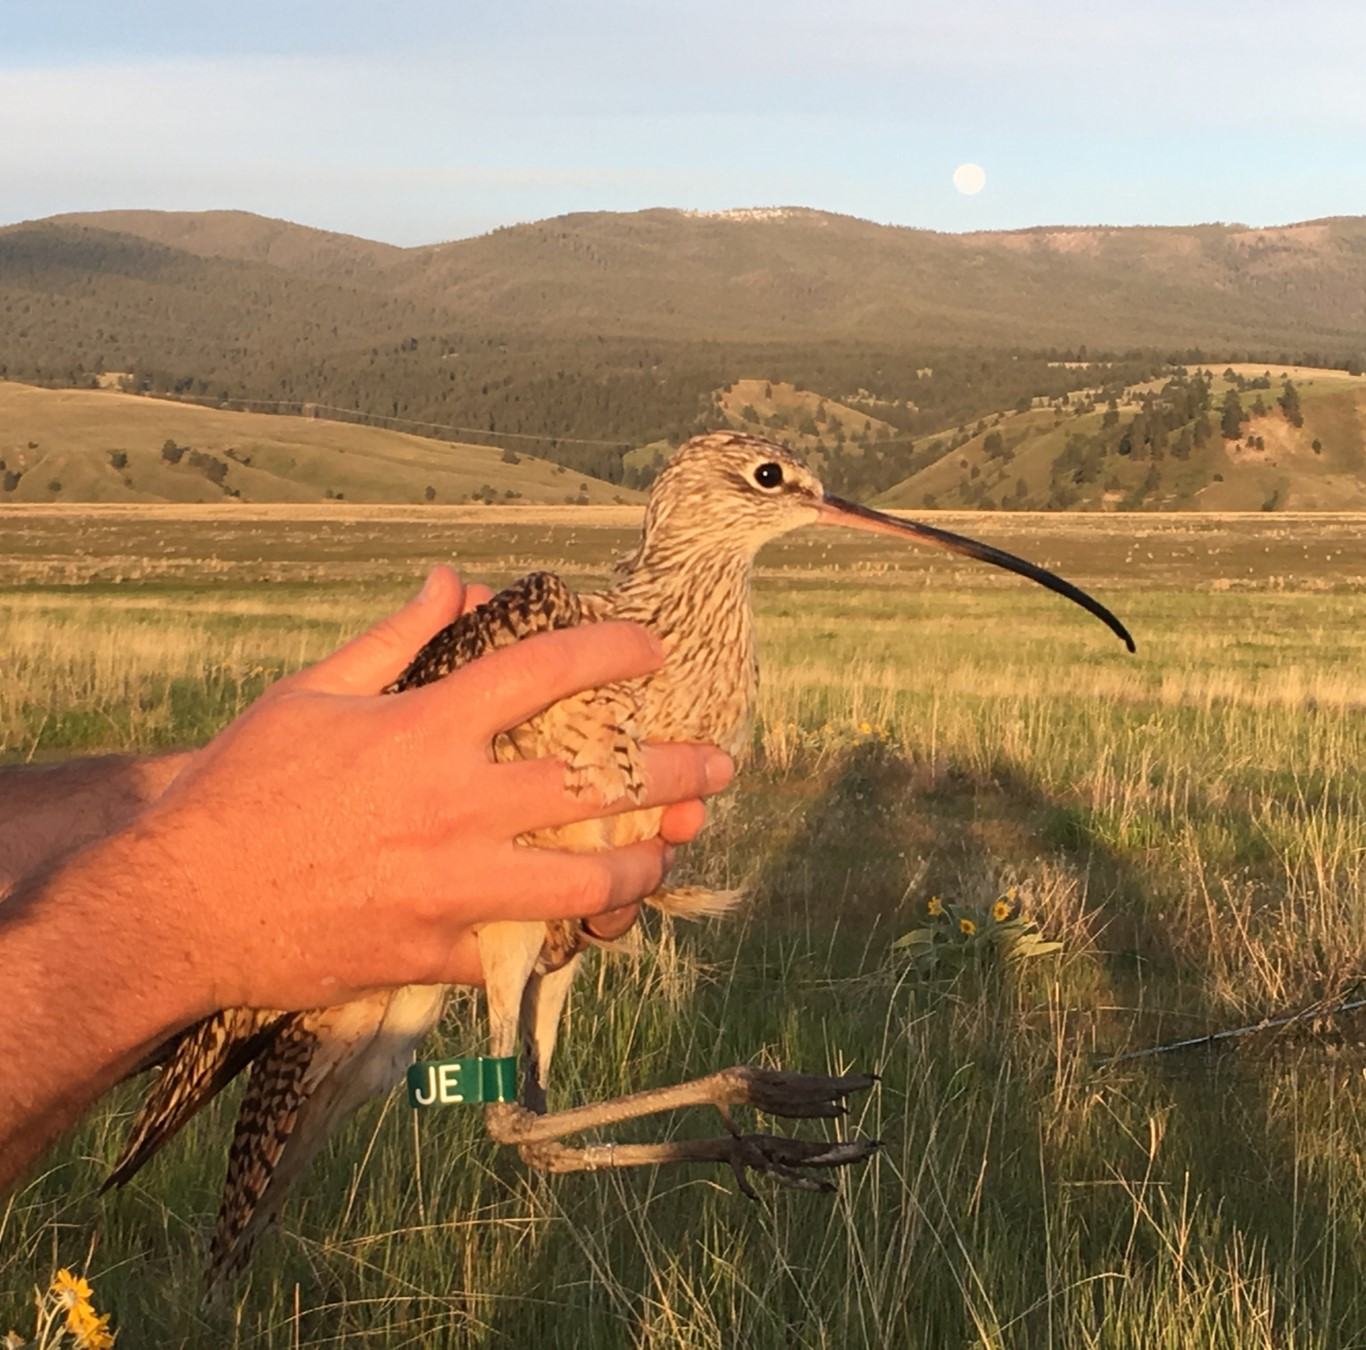 a biologists hands hold a curlew with a green leg band on its leg